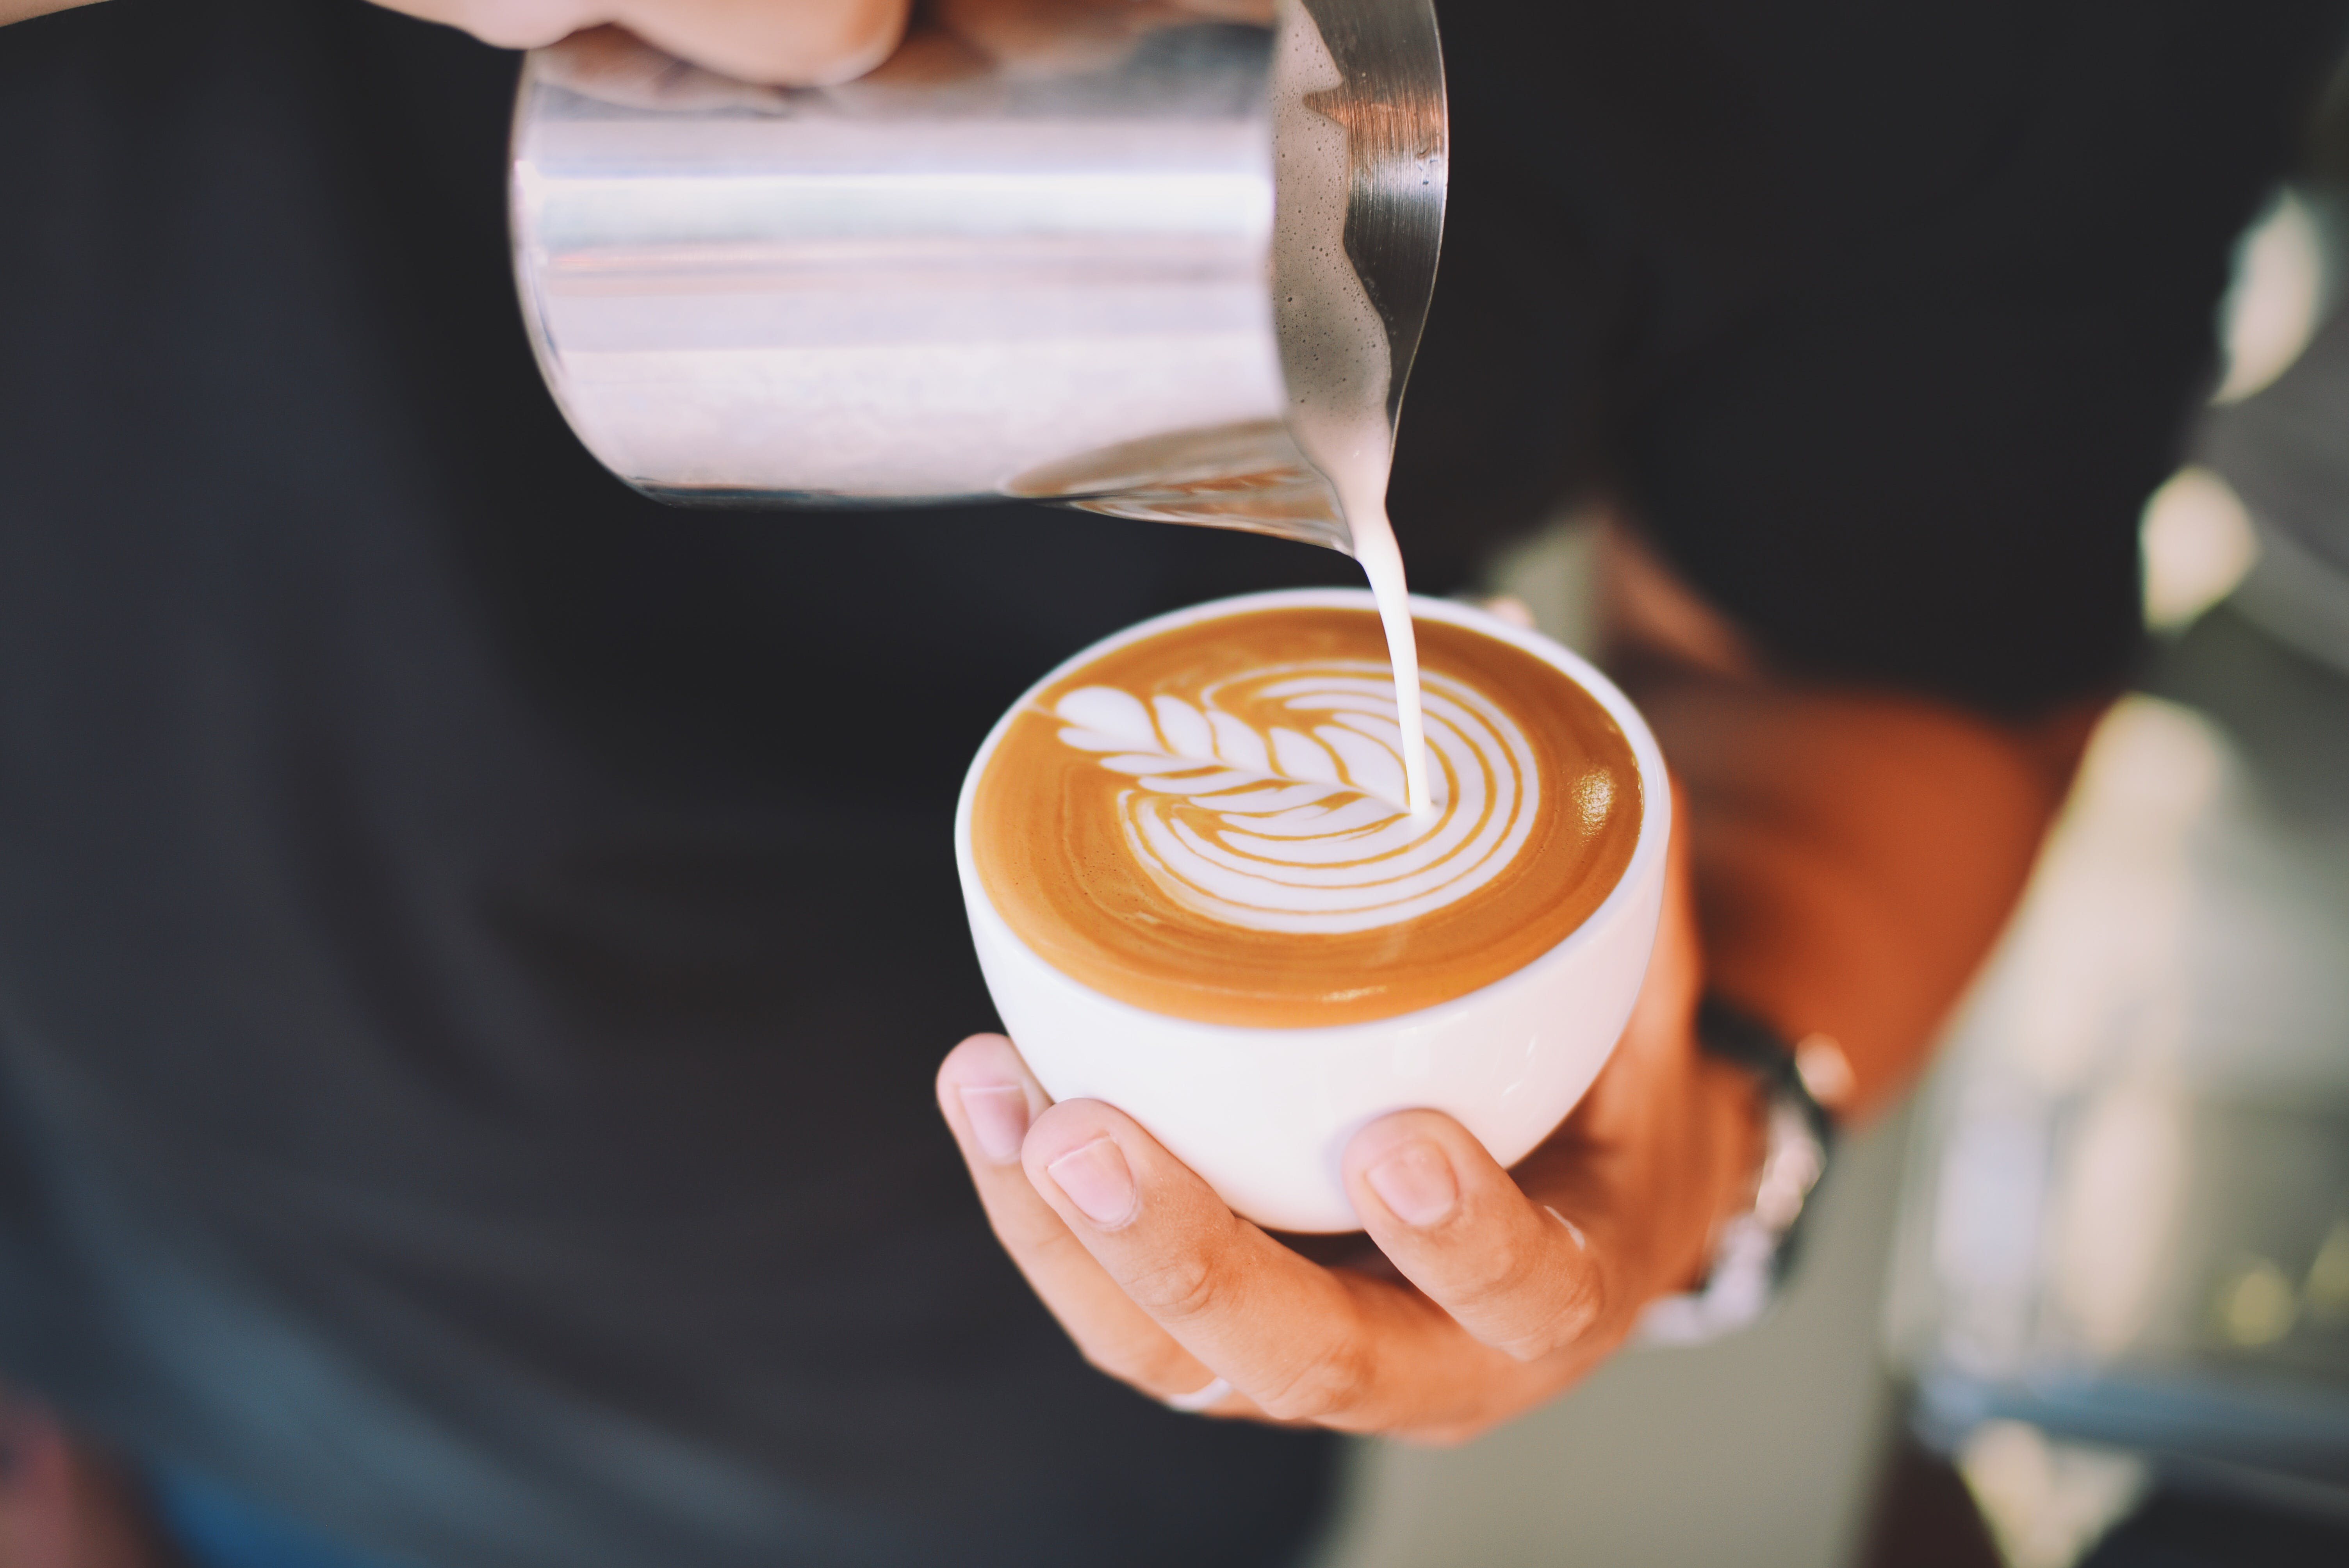 Close-up of Hand Holding Cappuccino